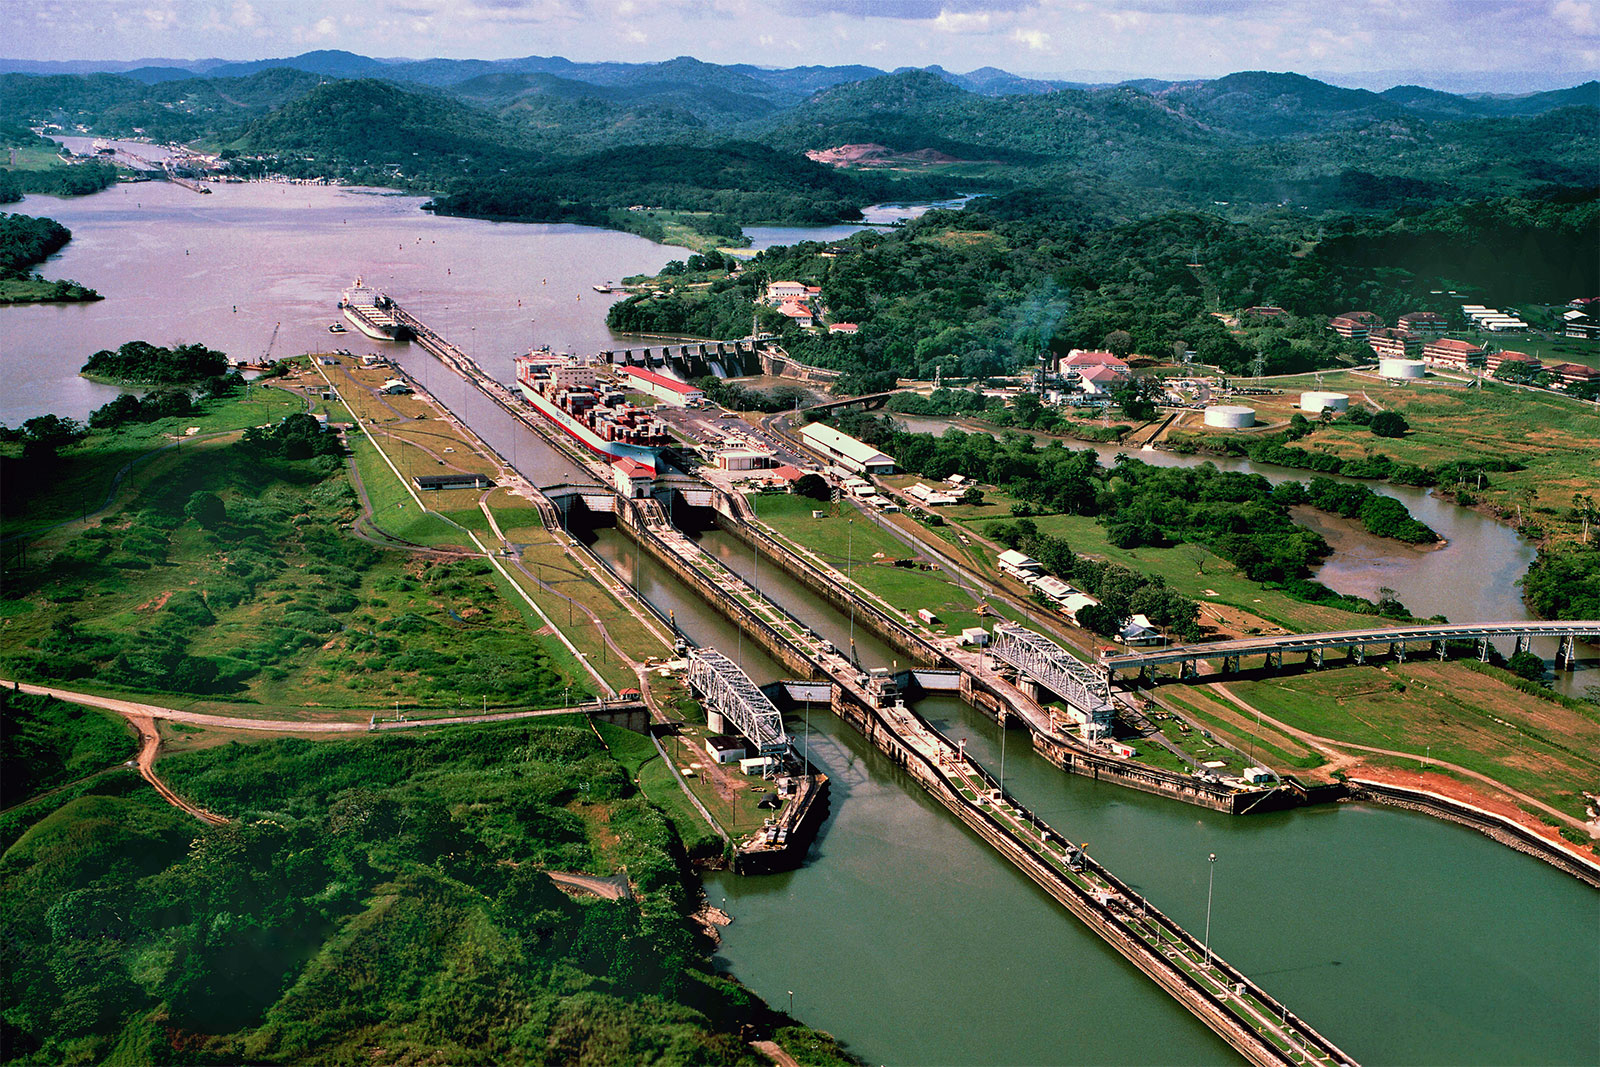 Panama Canal announces reduction of more than 13 million tons of CO2 in 2020